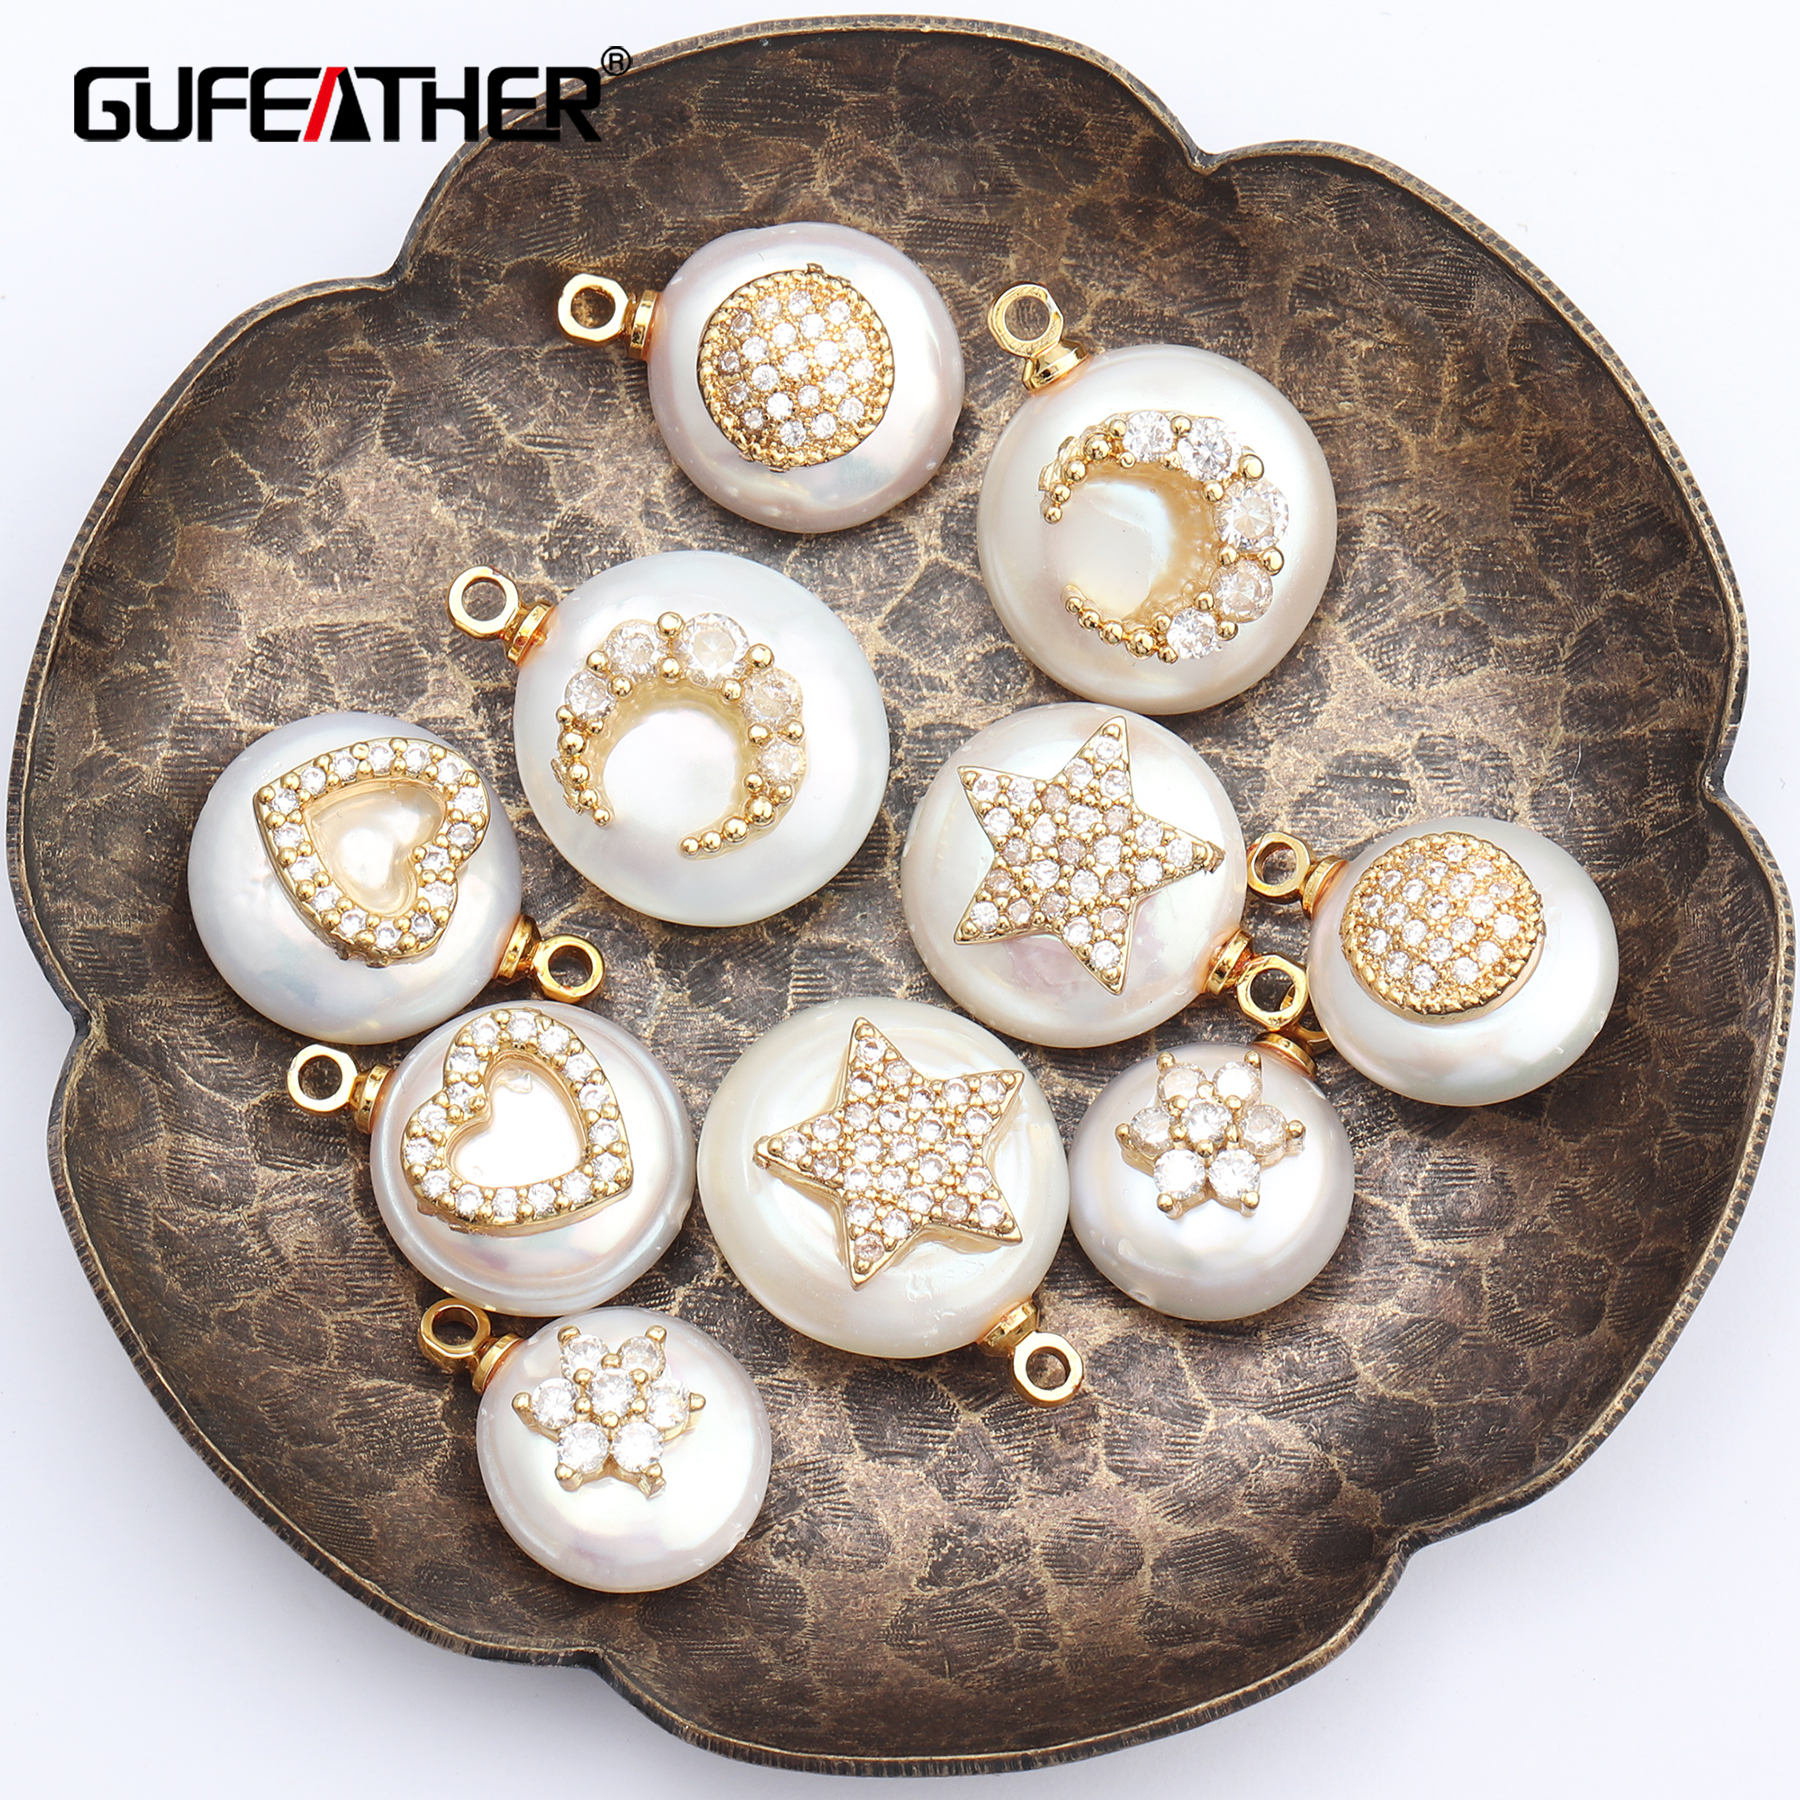 GUFEATHER M461,jewelry Accessories,pearl Pendant,hand Made,copper Metal,earring Accessories,jewelry Making,diy Earring,2pcs/lot